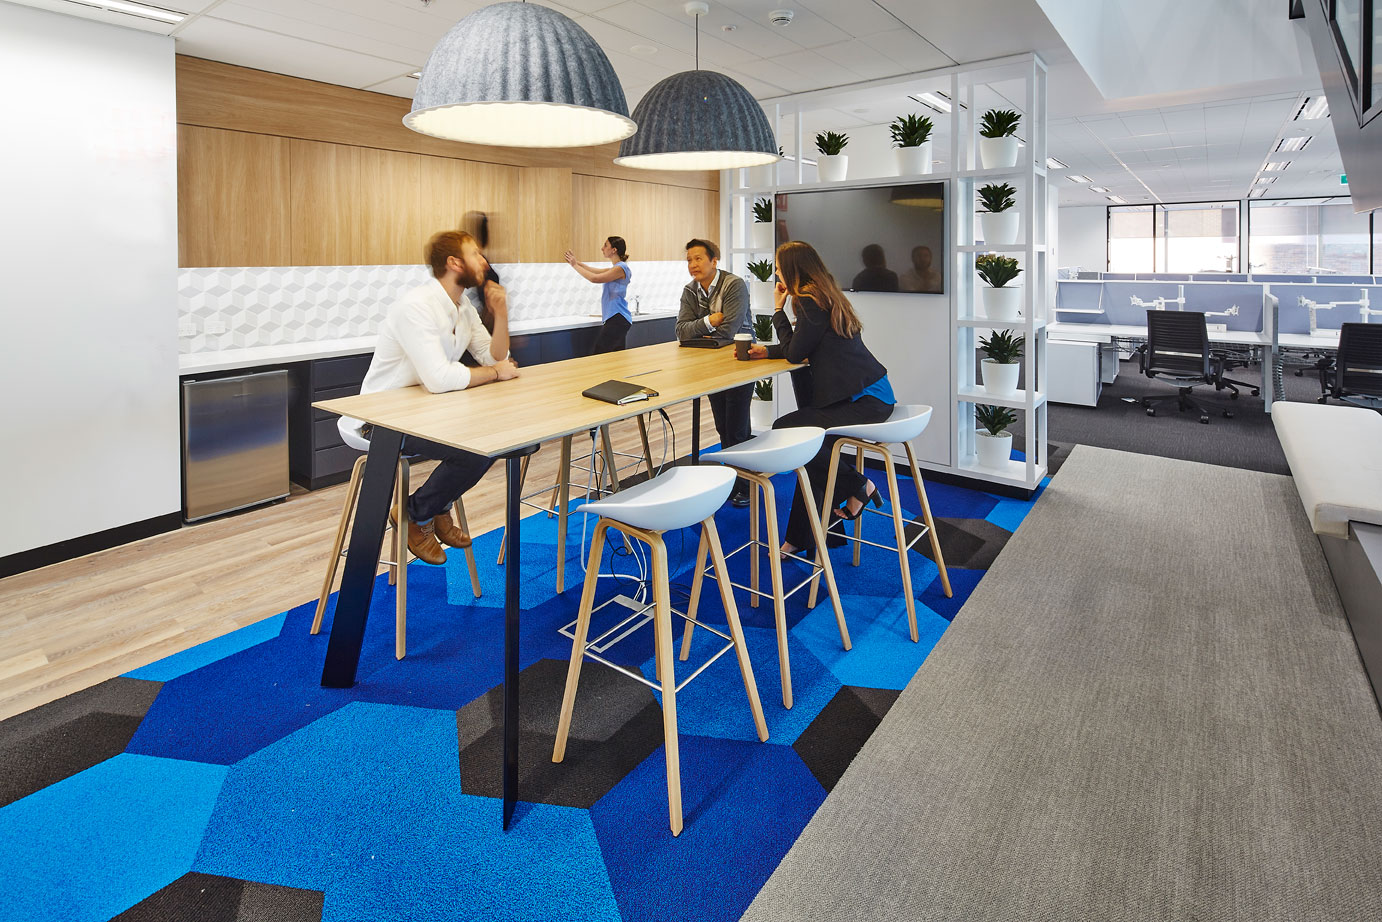 PCG-McGrath-Nicol-Workplace Design by PCG